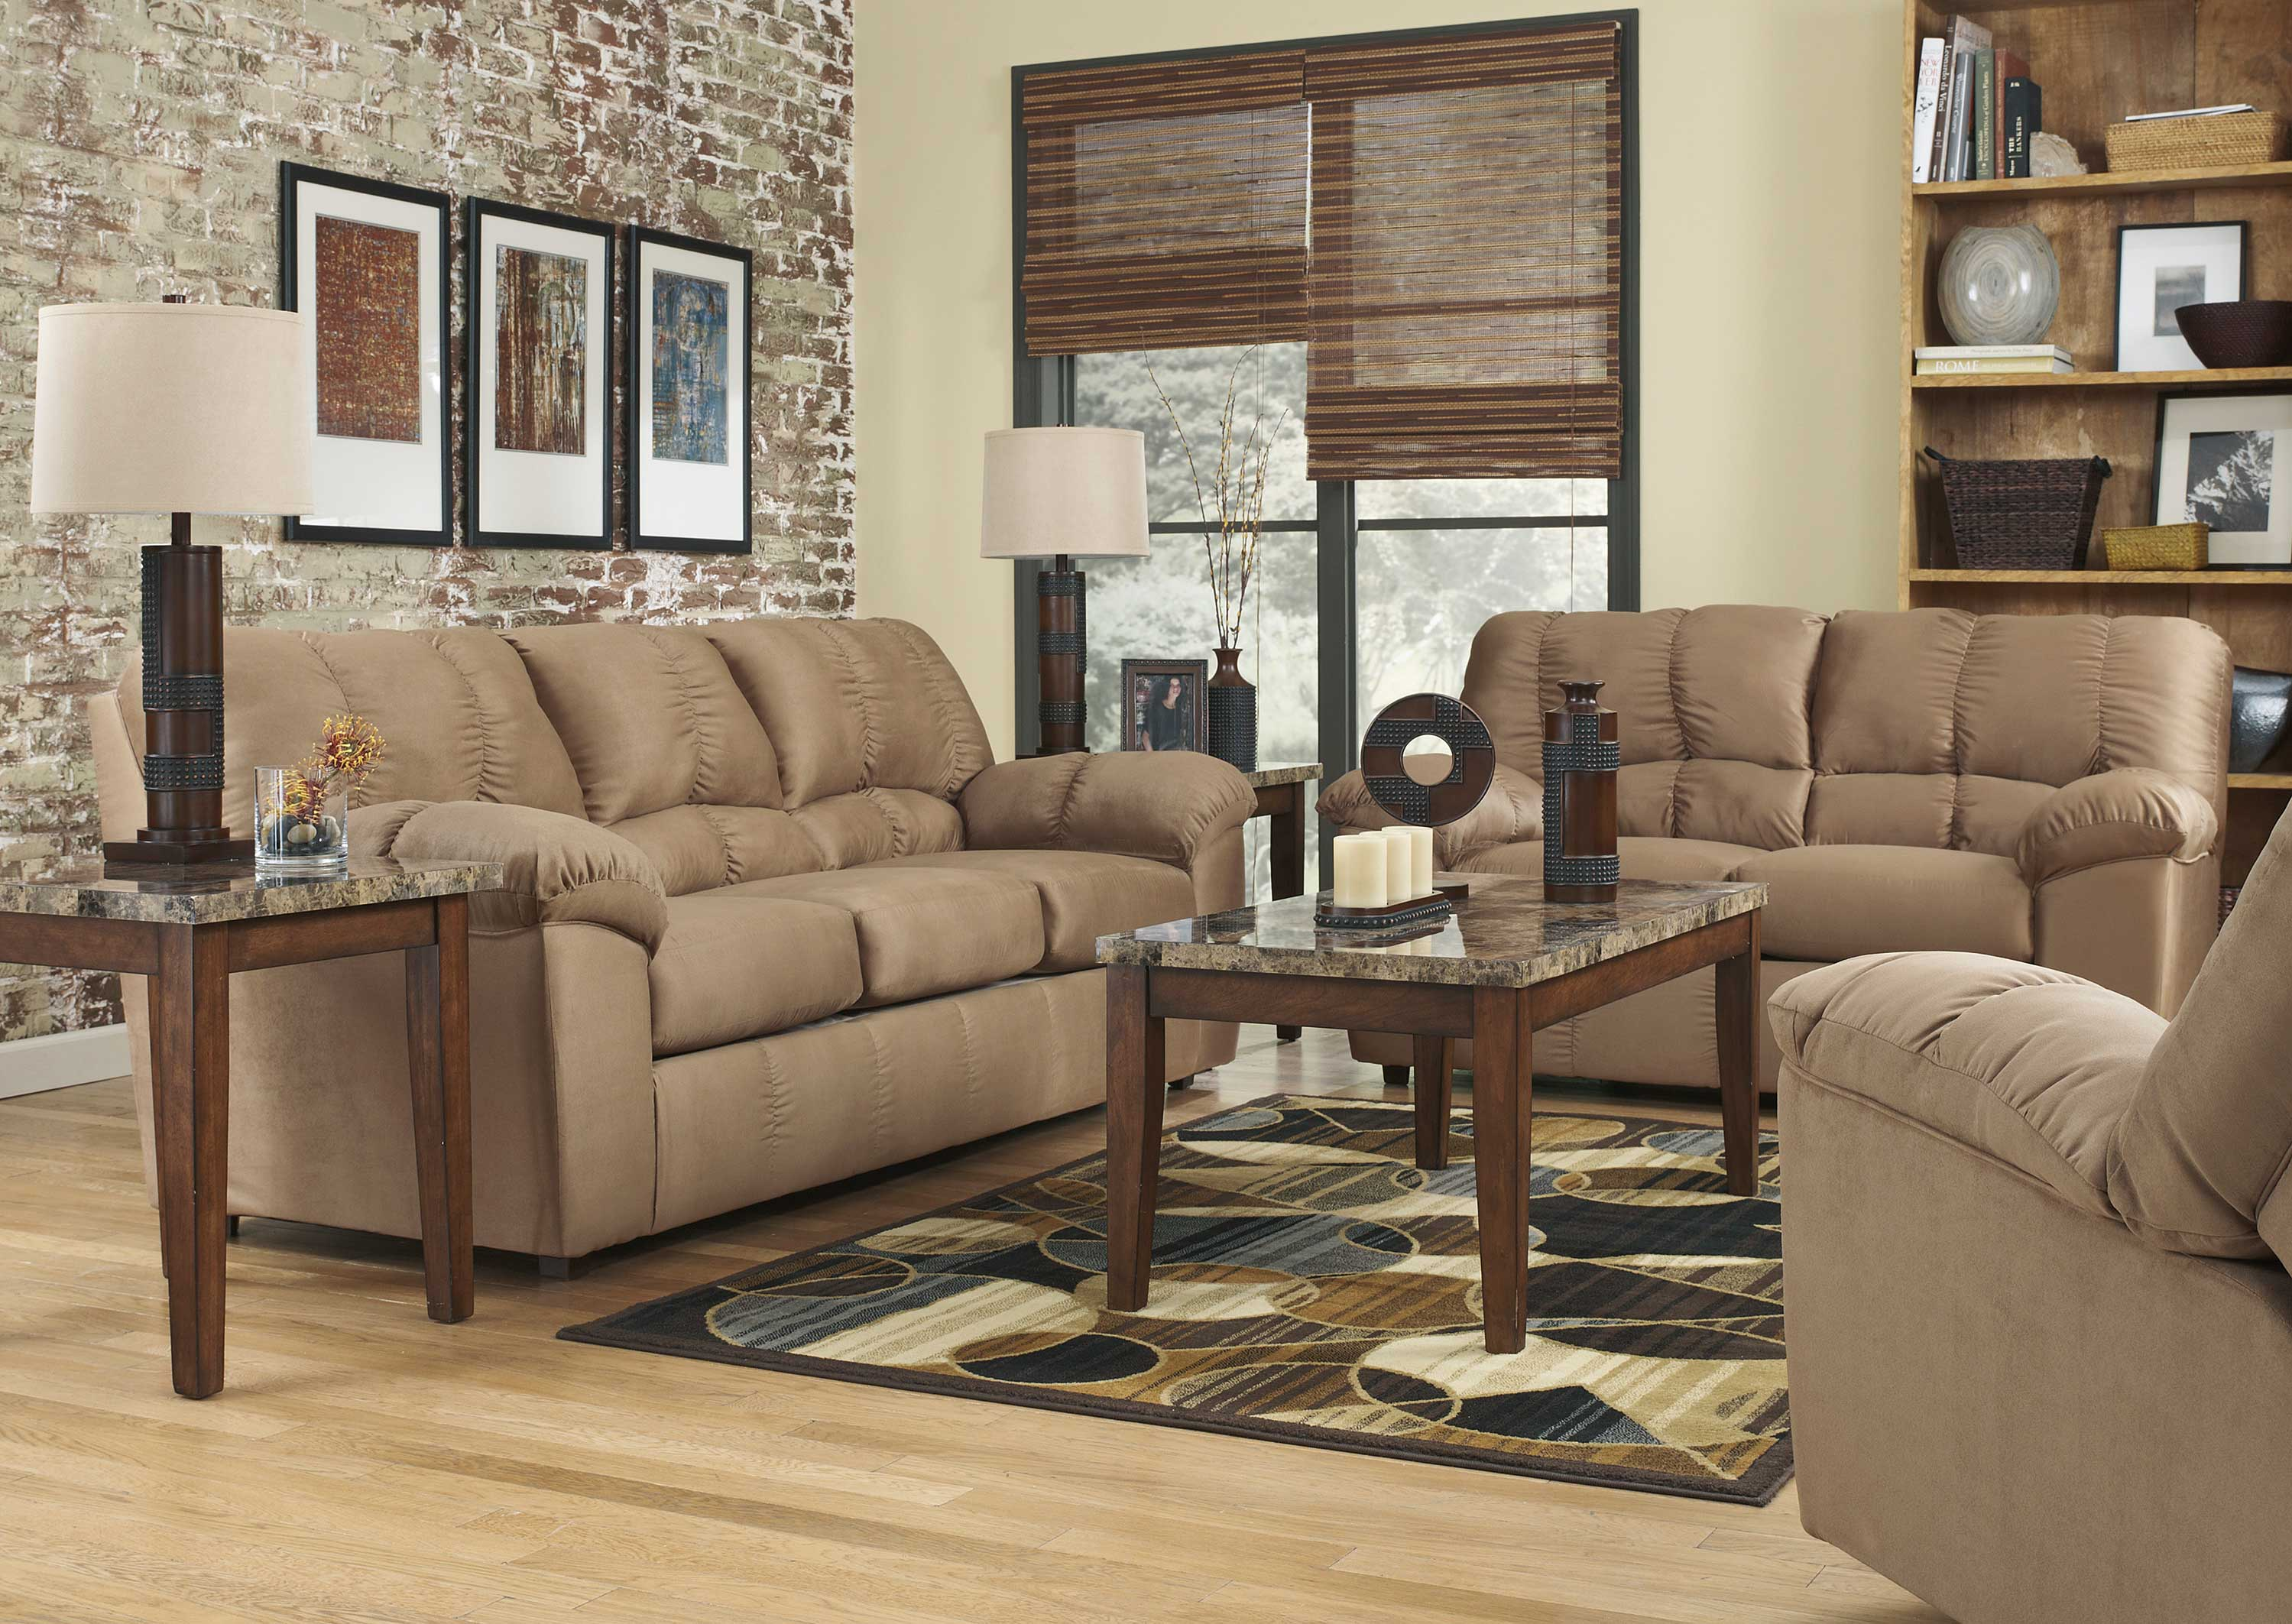 Ashley Furniture Sale Baton Rouge Top Furniture Of 2016